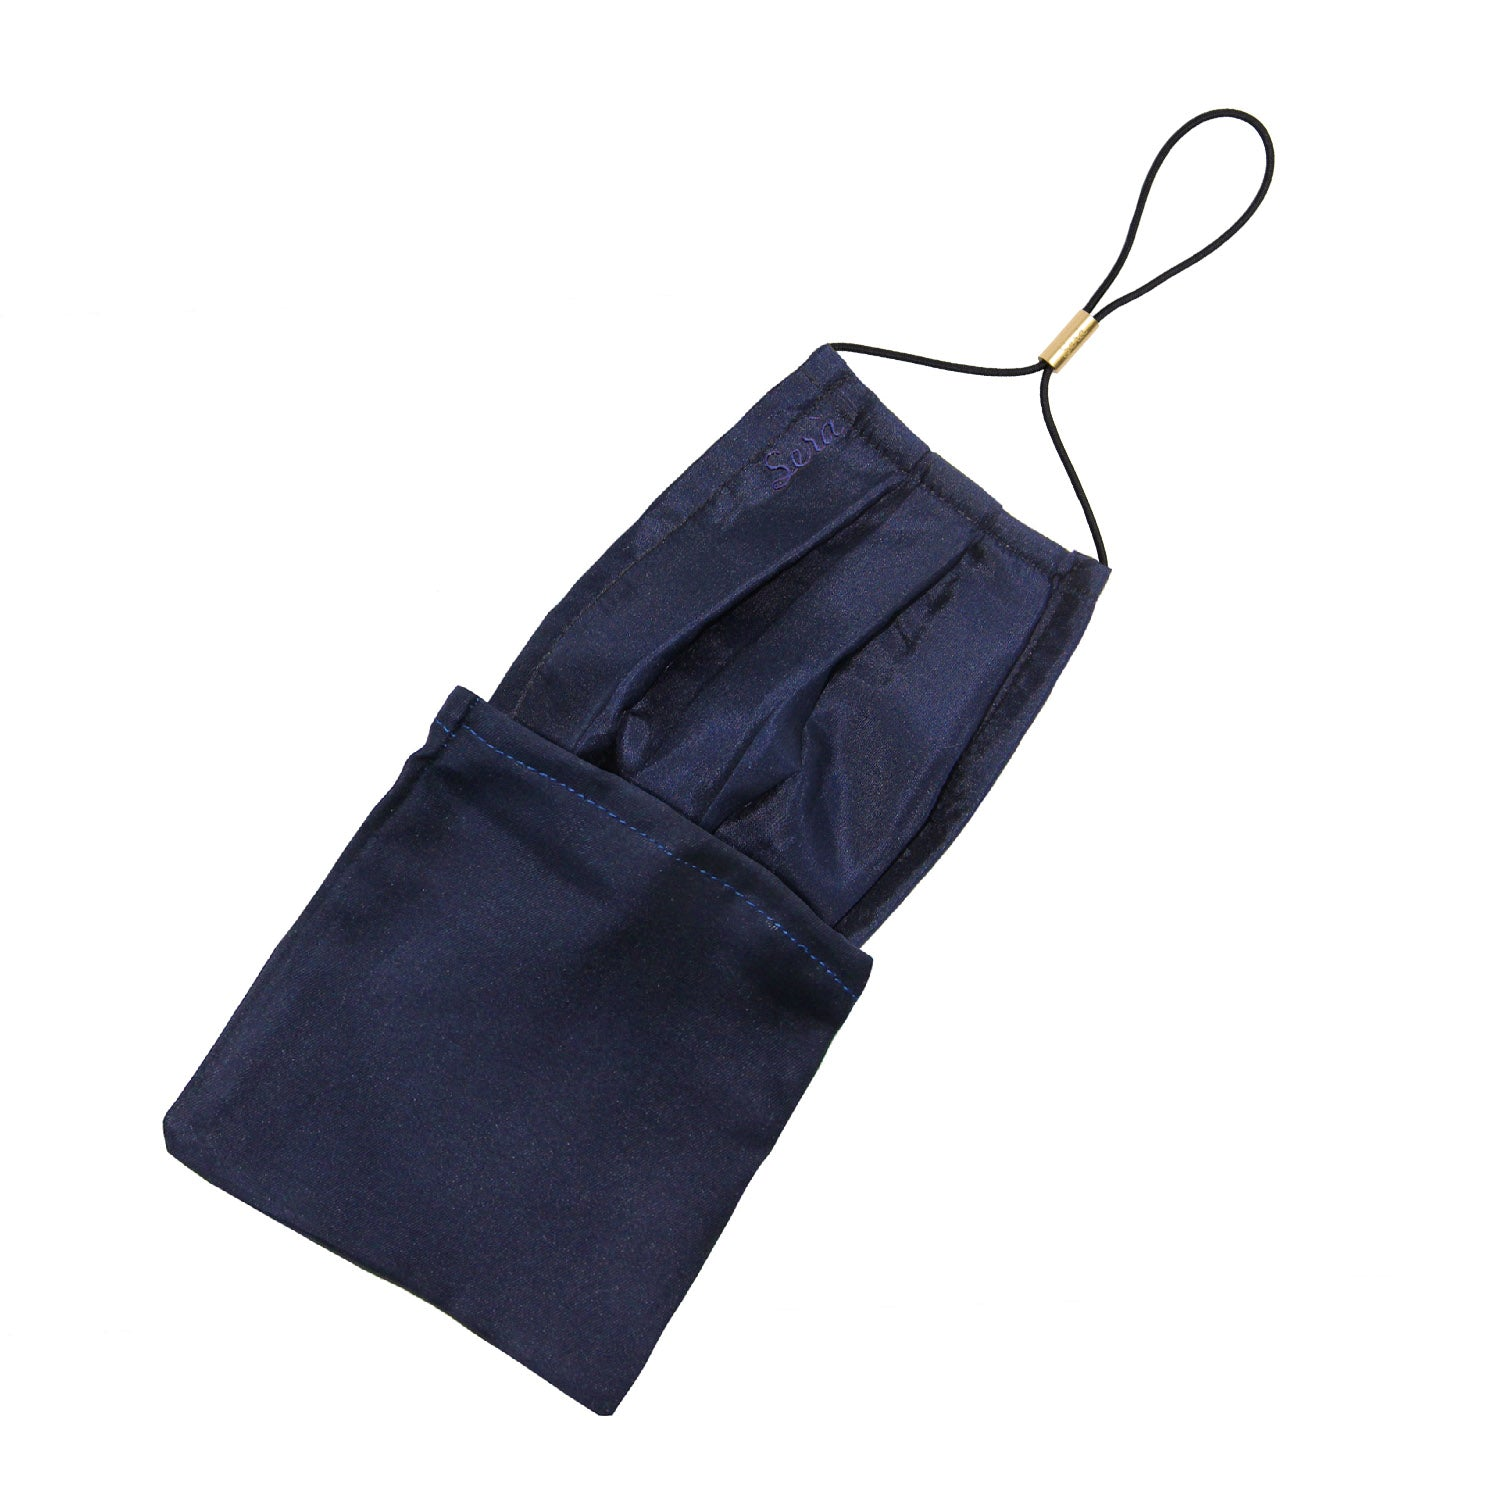 serà fine silk - Navy Blue Silk face cover with pocket